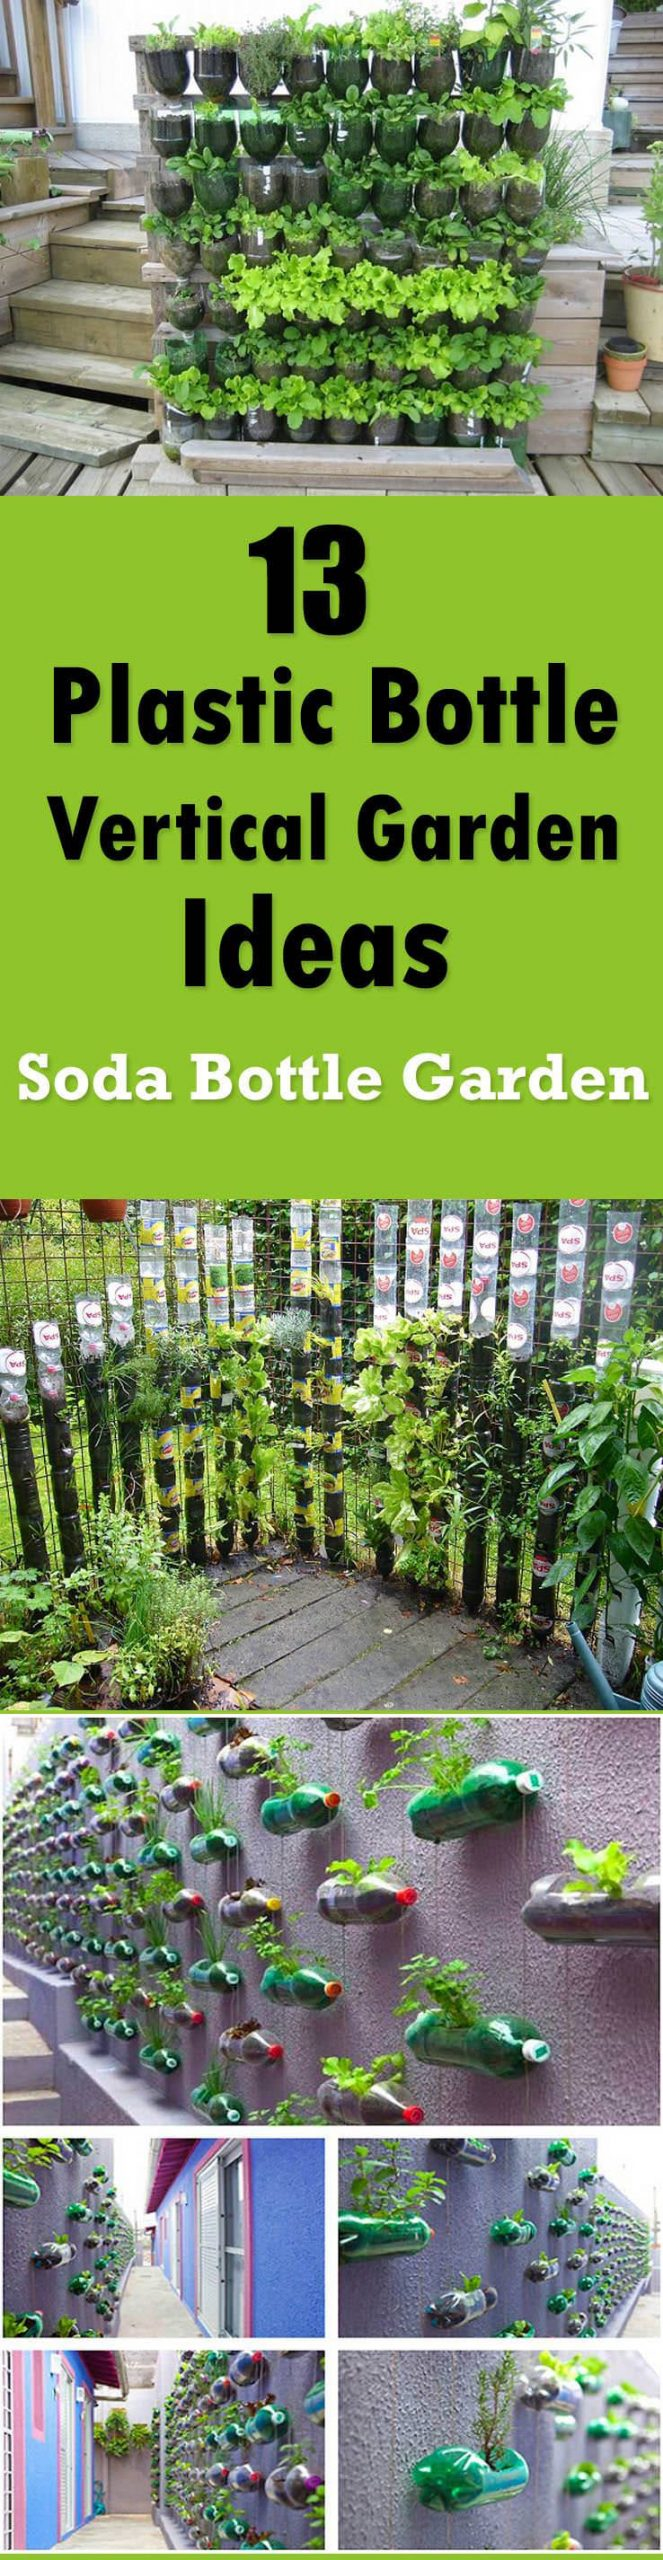 Simphome.com 13 plastic bottle vertical garden ideas soda bottle garden inside 10 recycle ideas for garden incredible as well as attractive